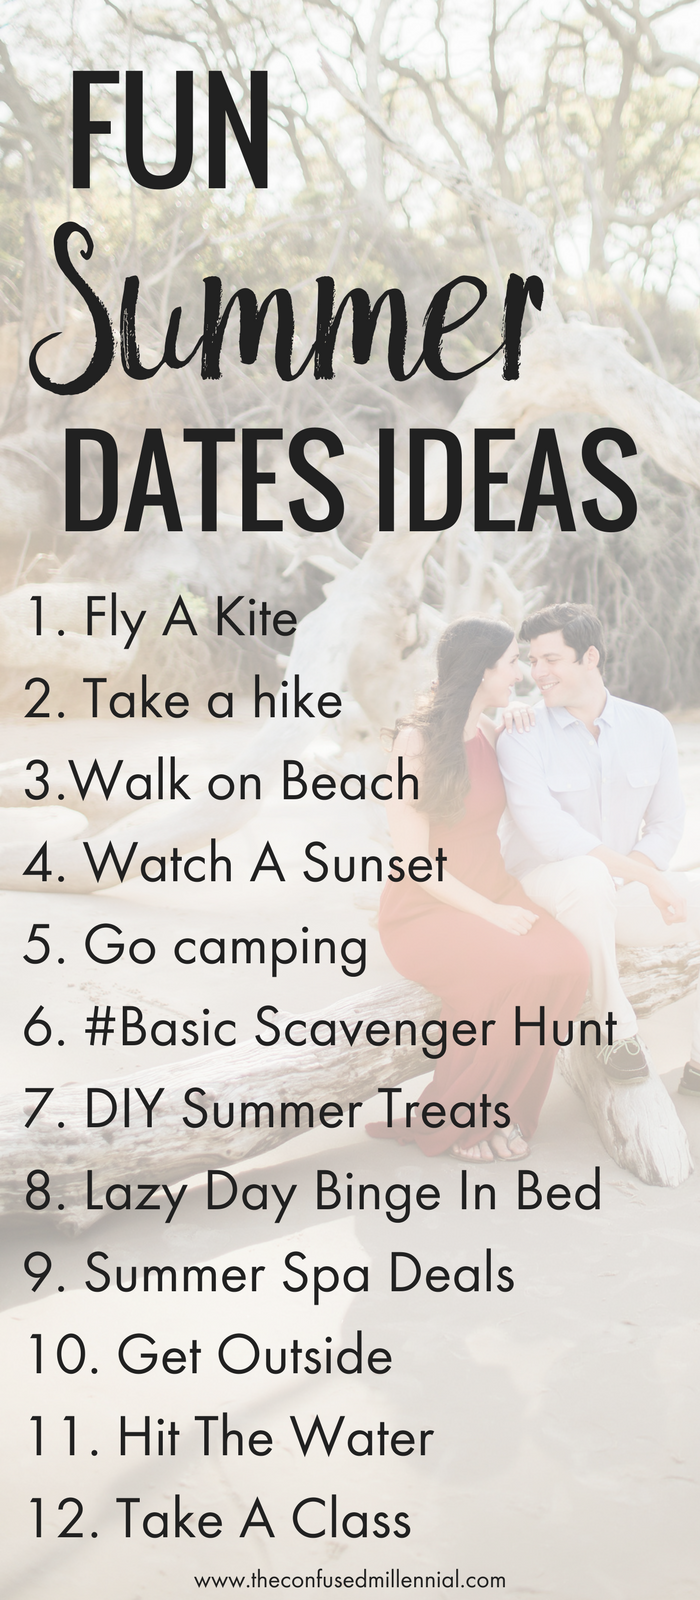 budget Dating Tips